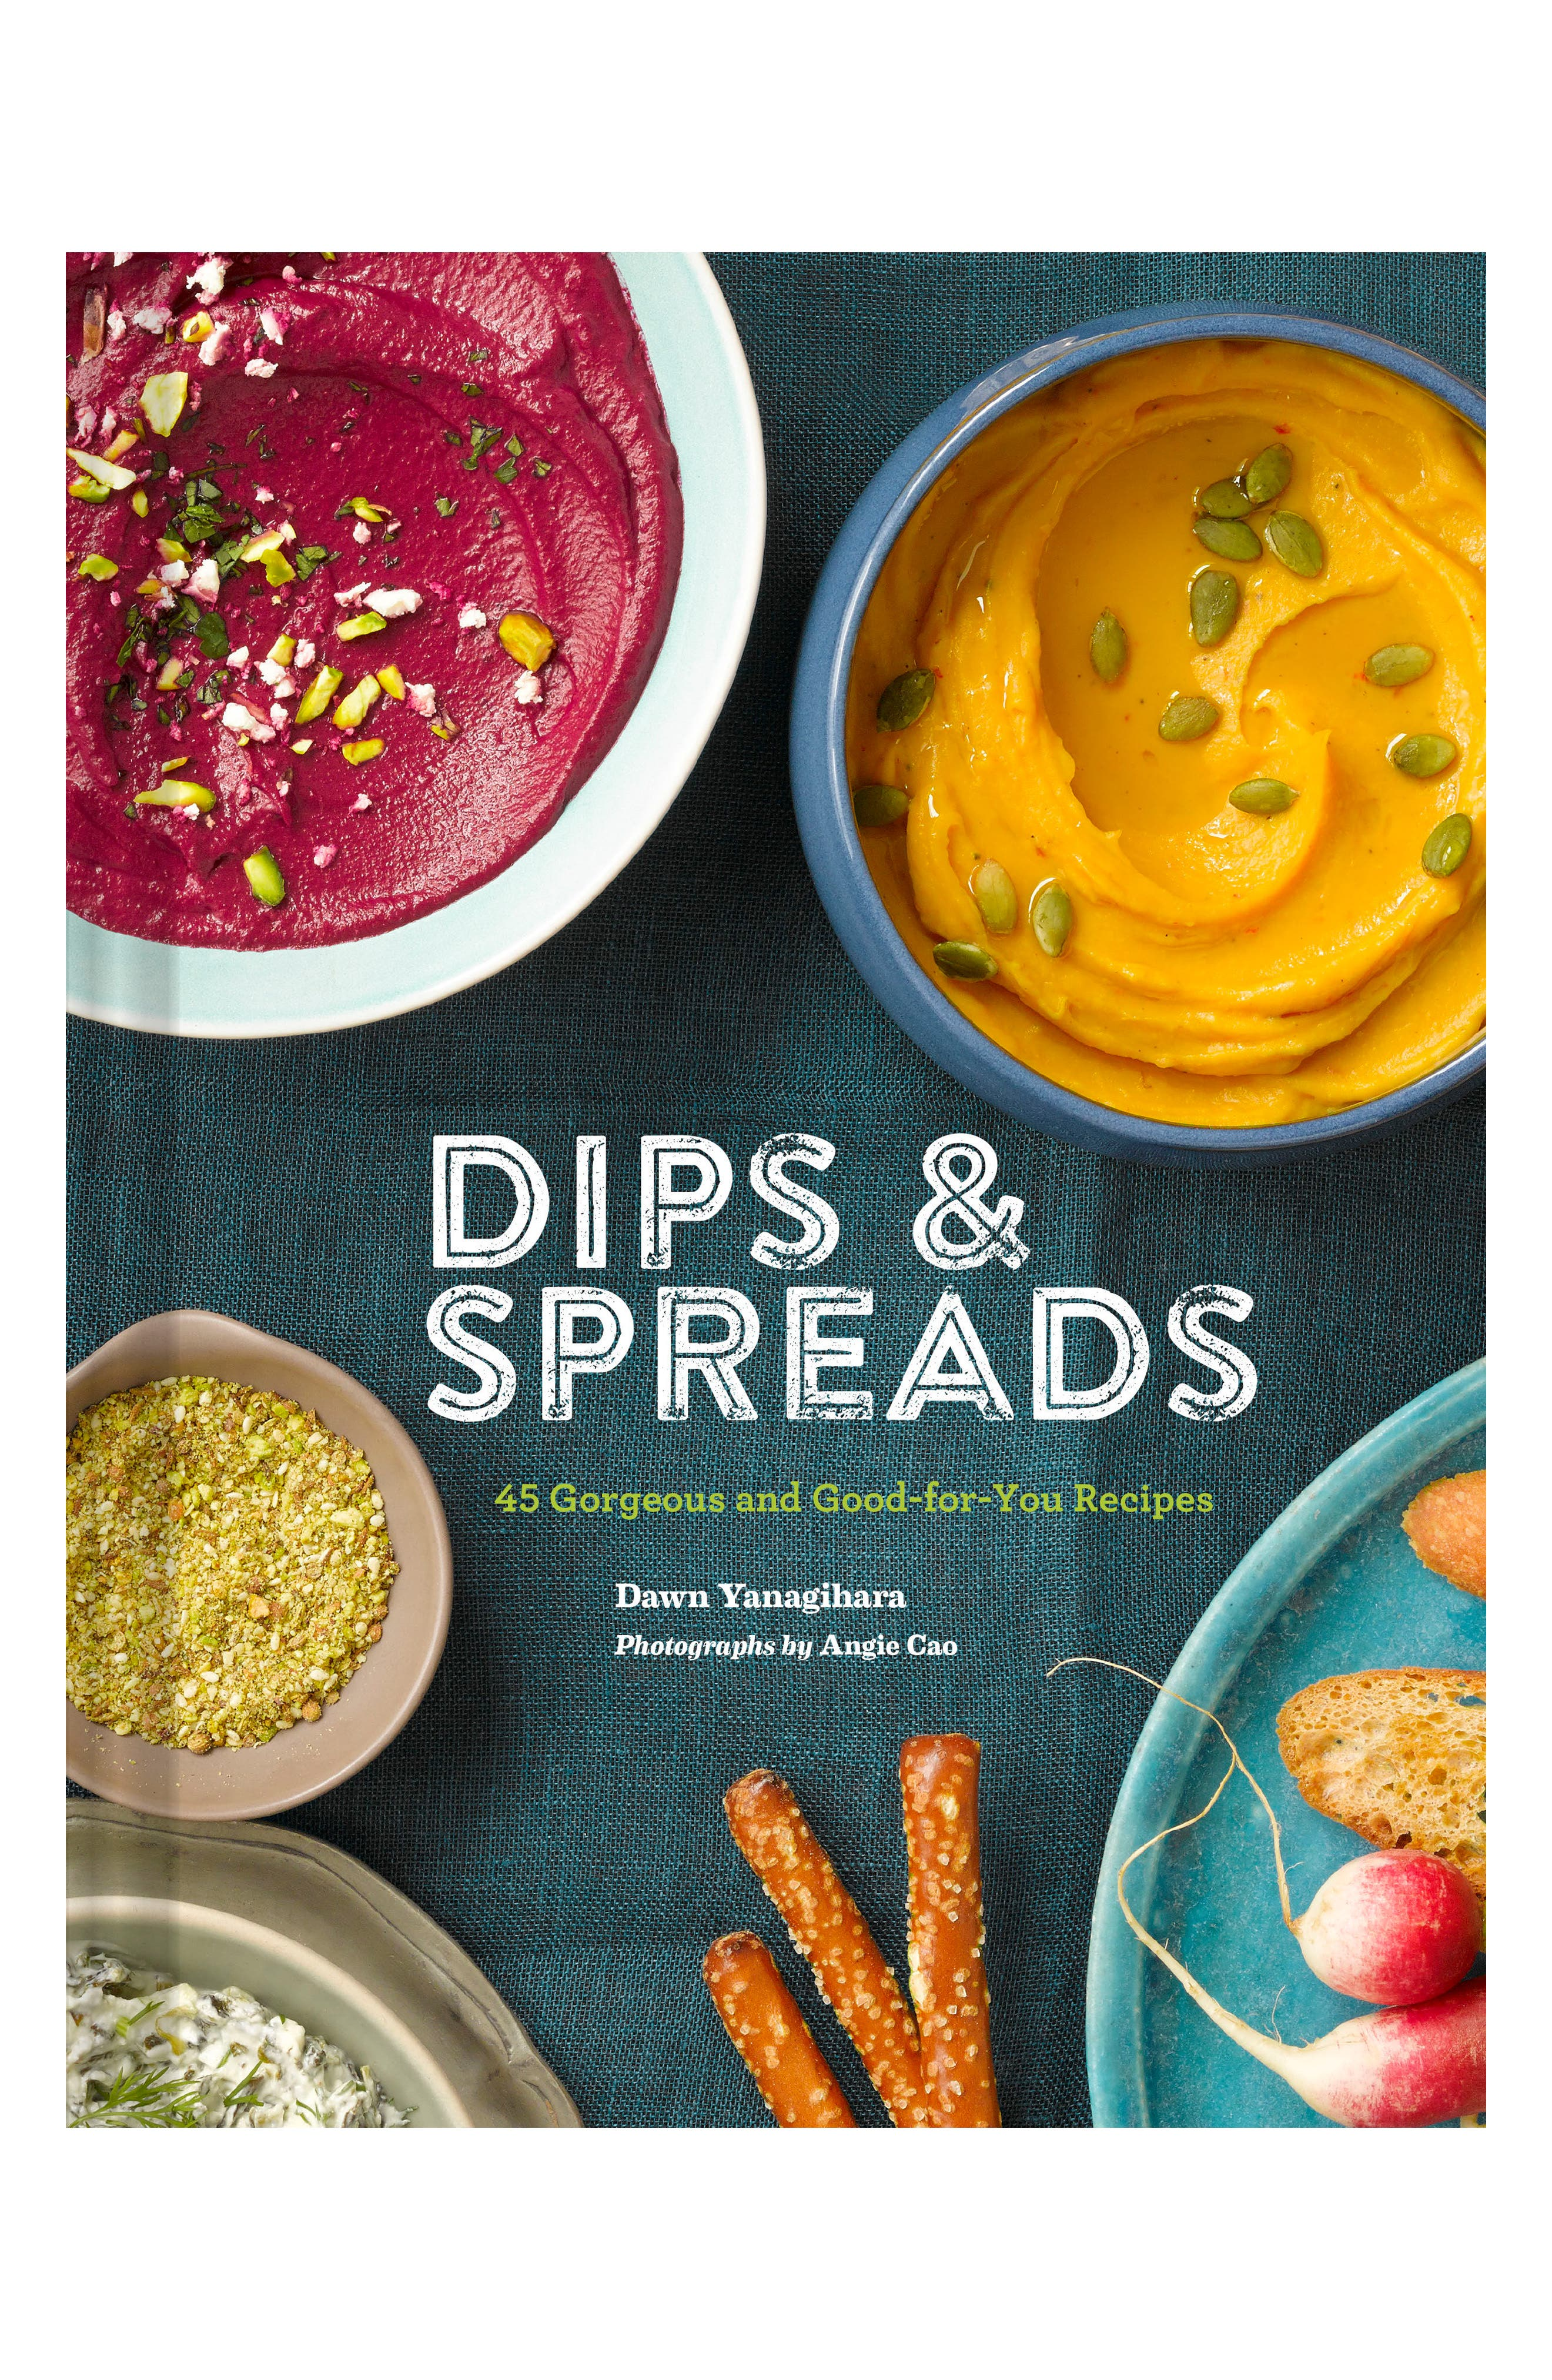 Dips & Spreads: 45 Gorgeous and Good-for-You Recipes Book